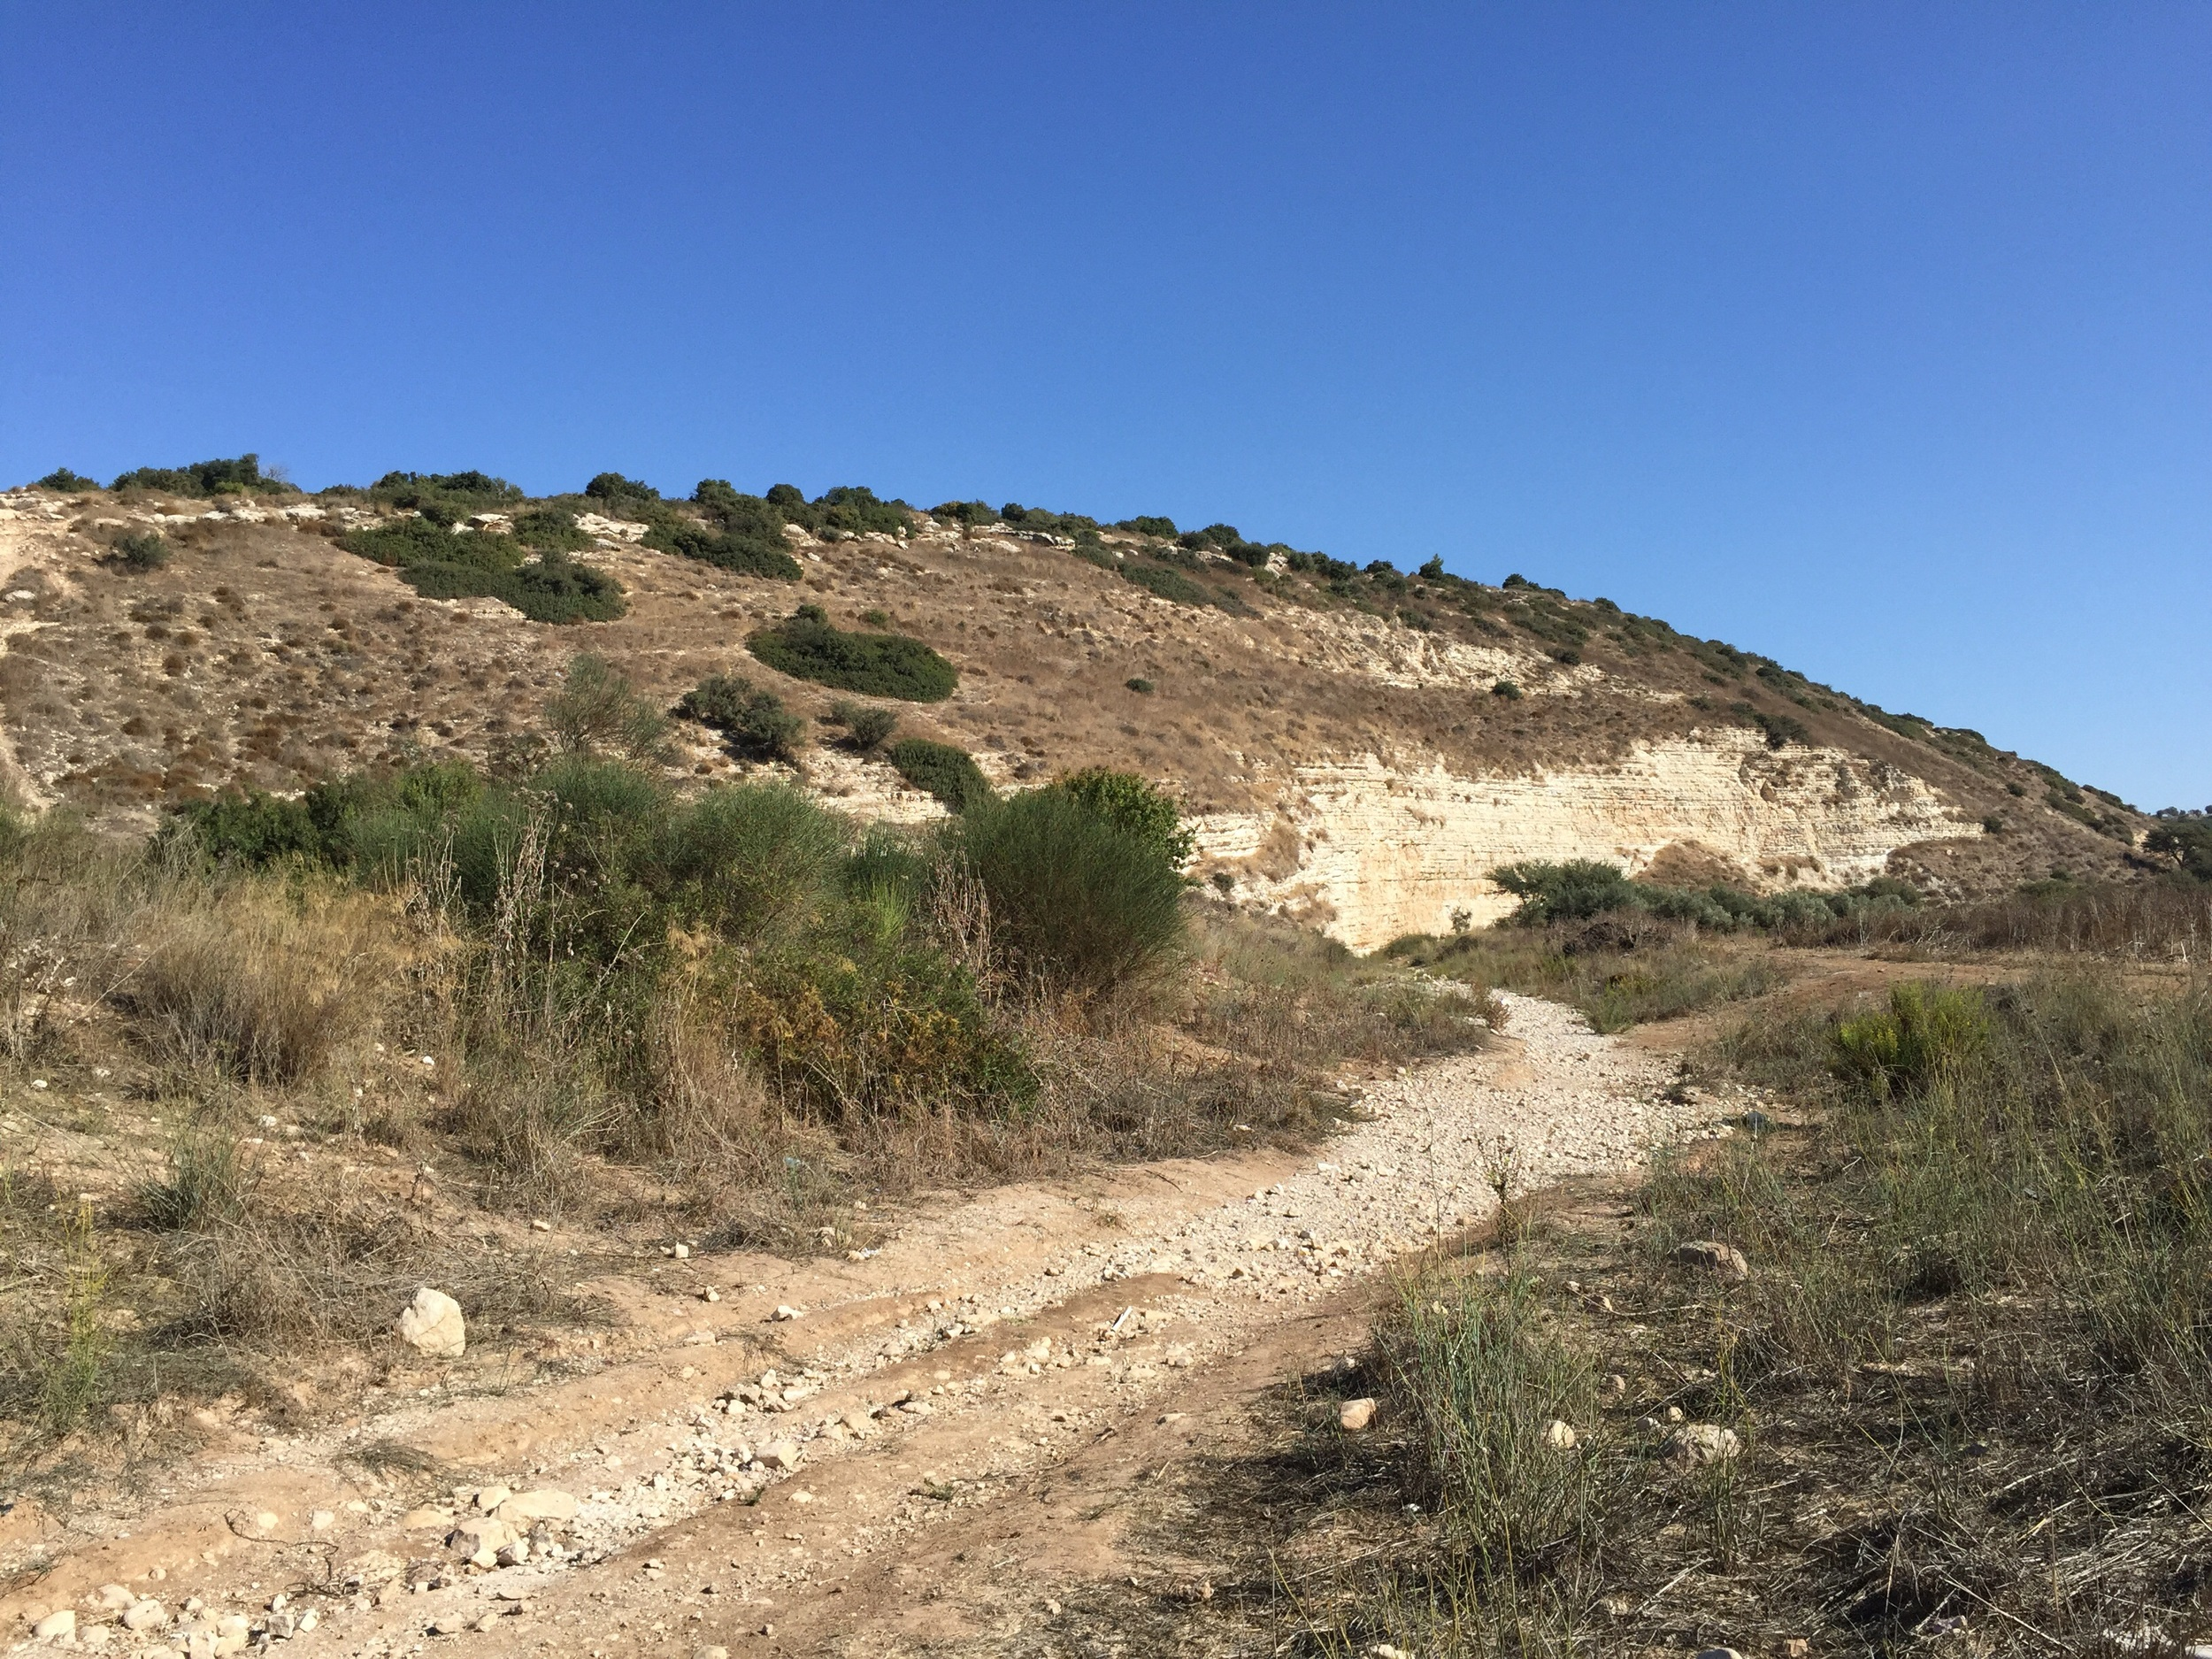 Standing at the foot of the mountain in the Valley of Elah where the Israelites faced the Philistines. The dry brook is where David picked up his five smooth stones for his sling. (We will upload a higher resolution image when we get home.)